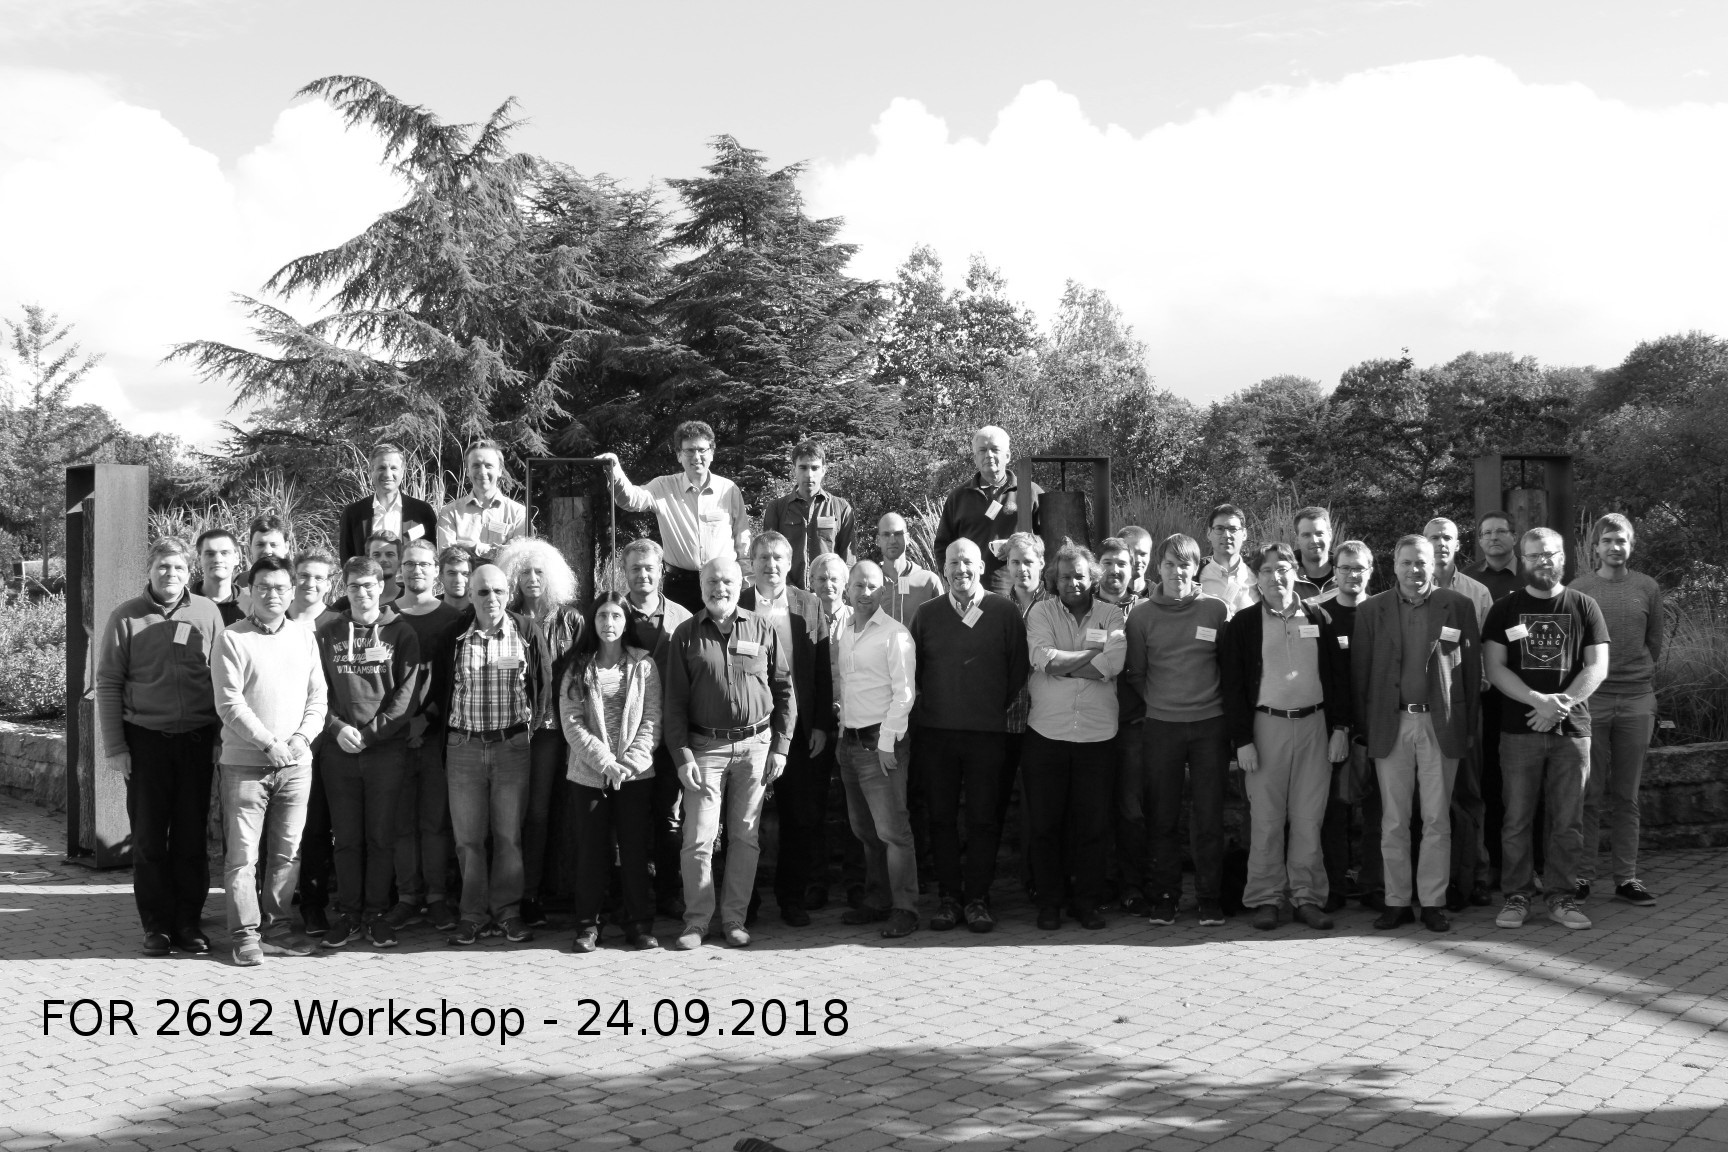 FOR 2692 Workshop - 24.09.2018